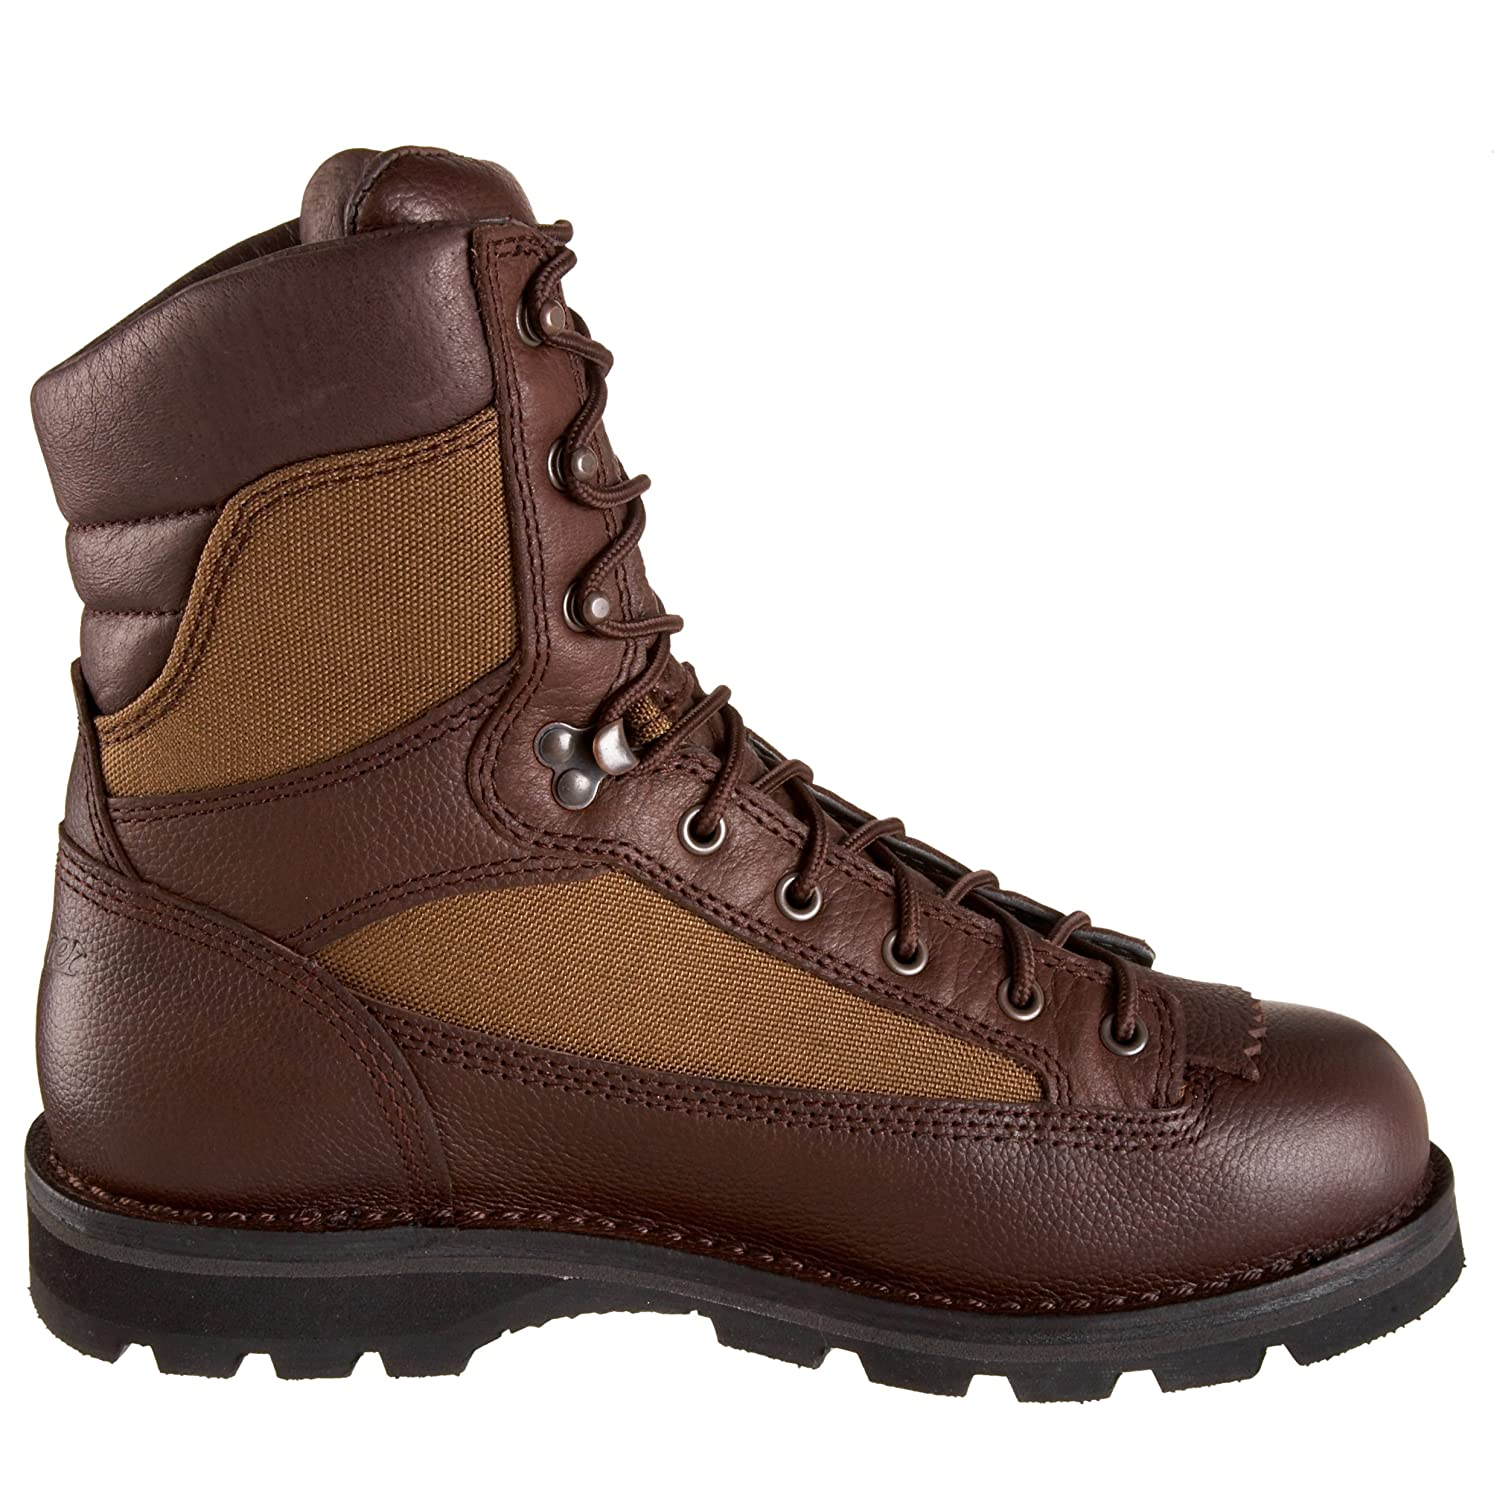 96e081815c1 Amazon.com | Danner Men's Elk Ridge GTX Hunting Boot | Hunting